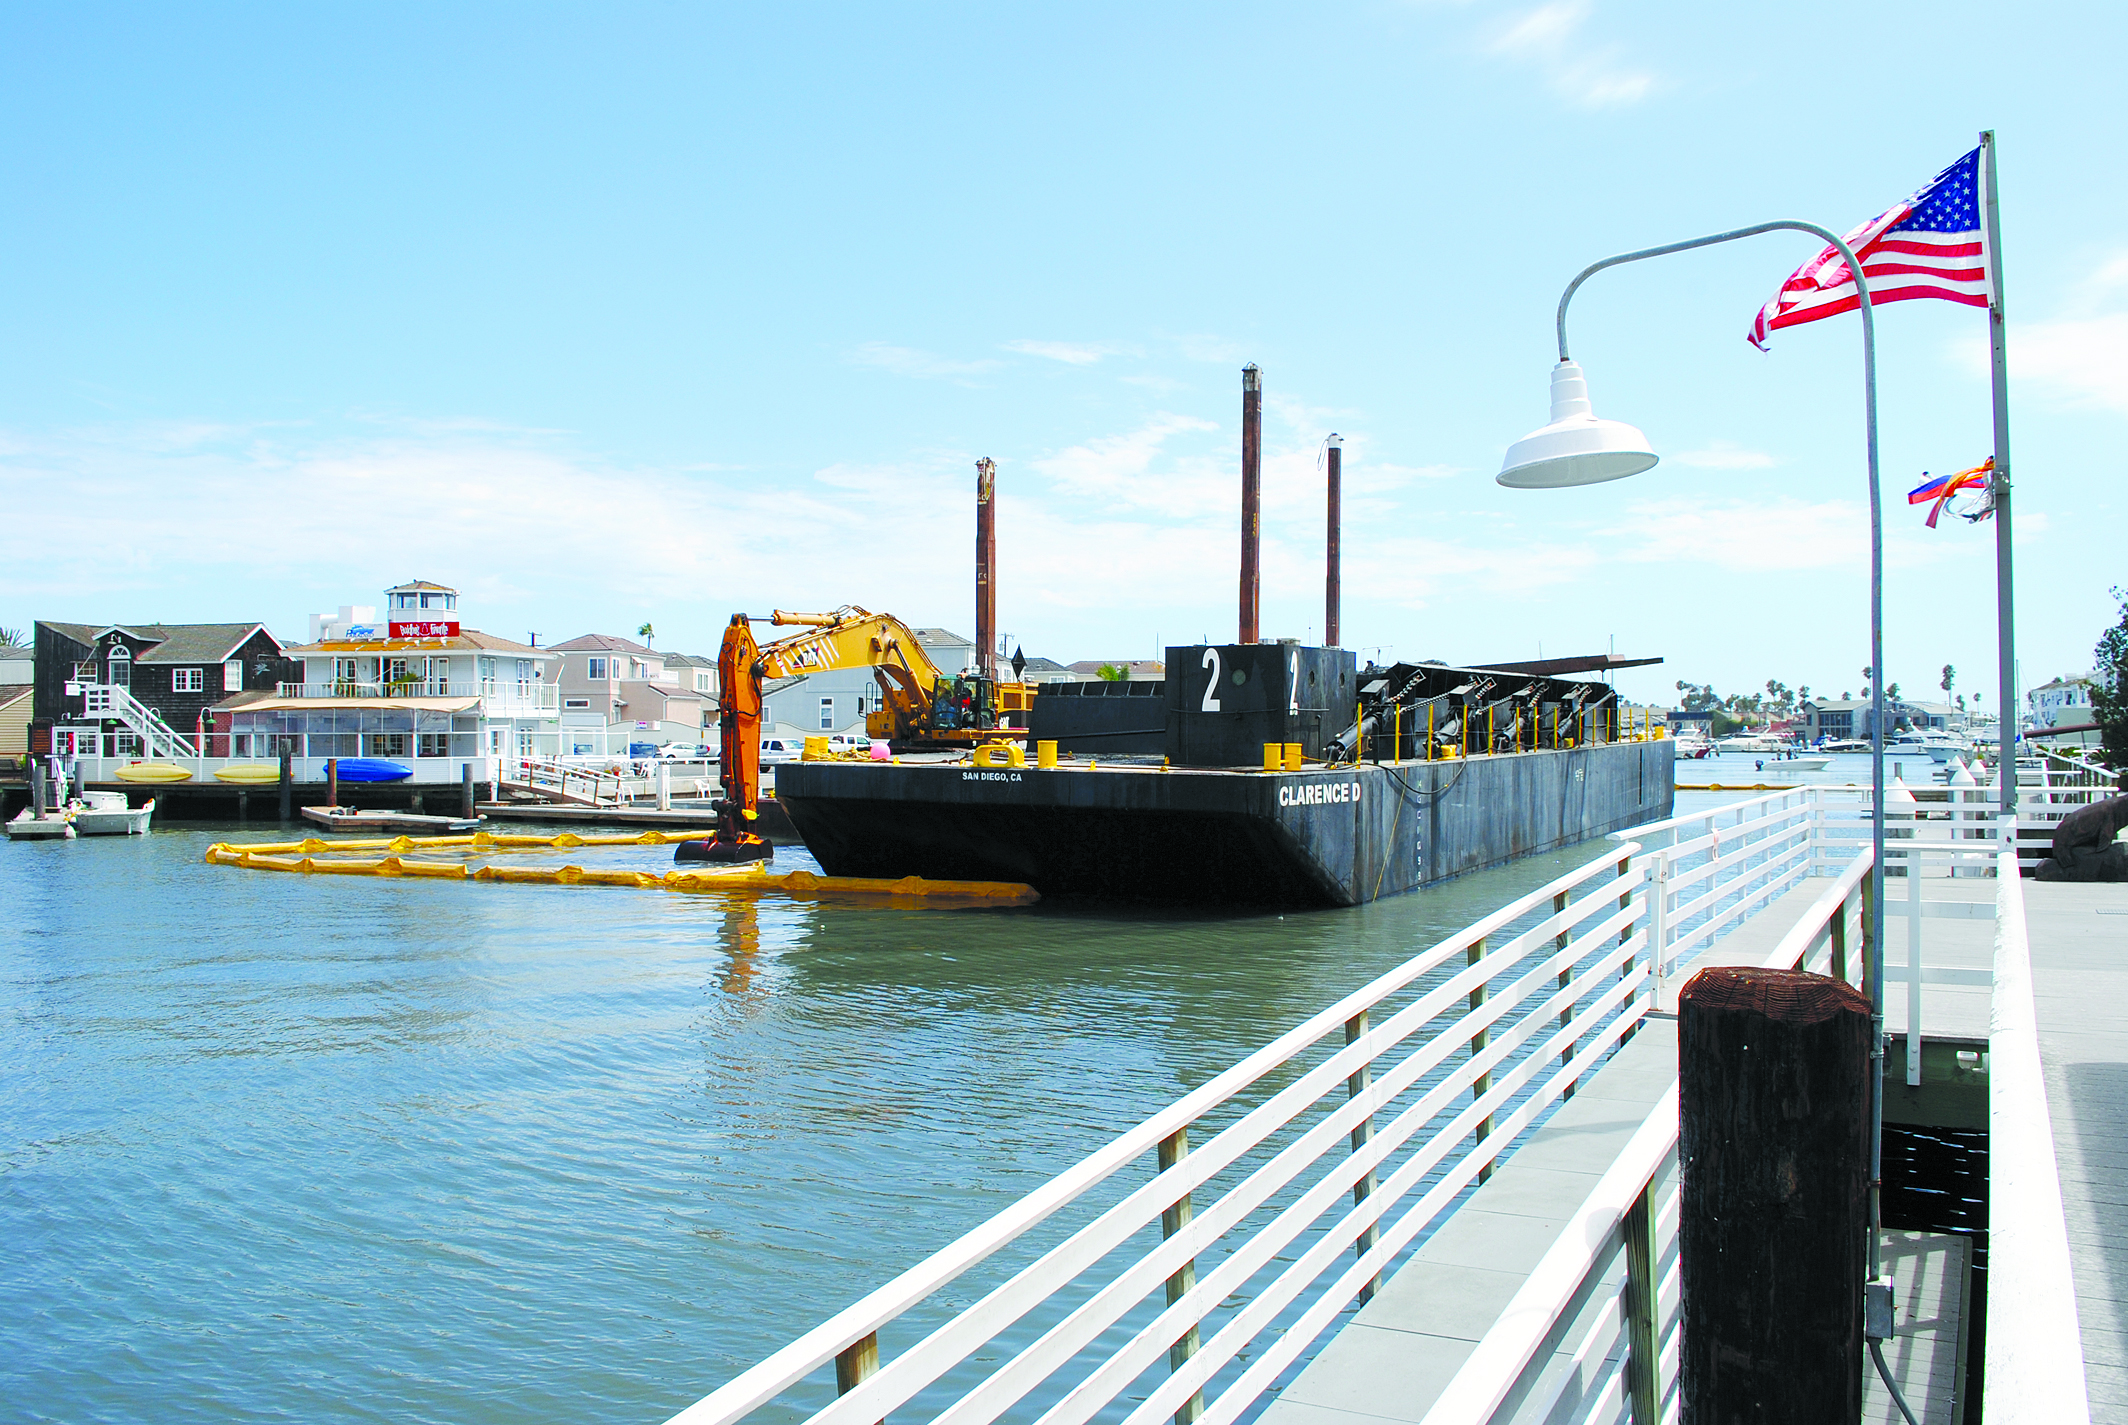 Rhine Channel Dredging Could Be Finished by Thanksgiving